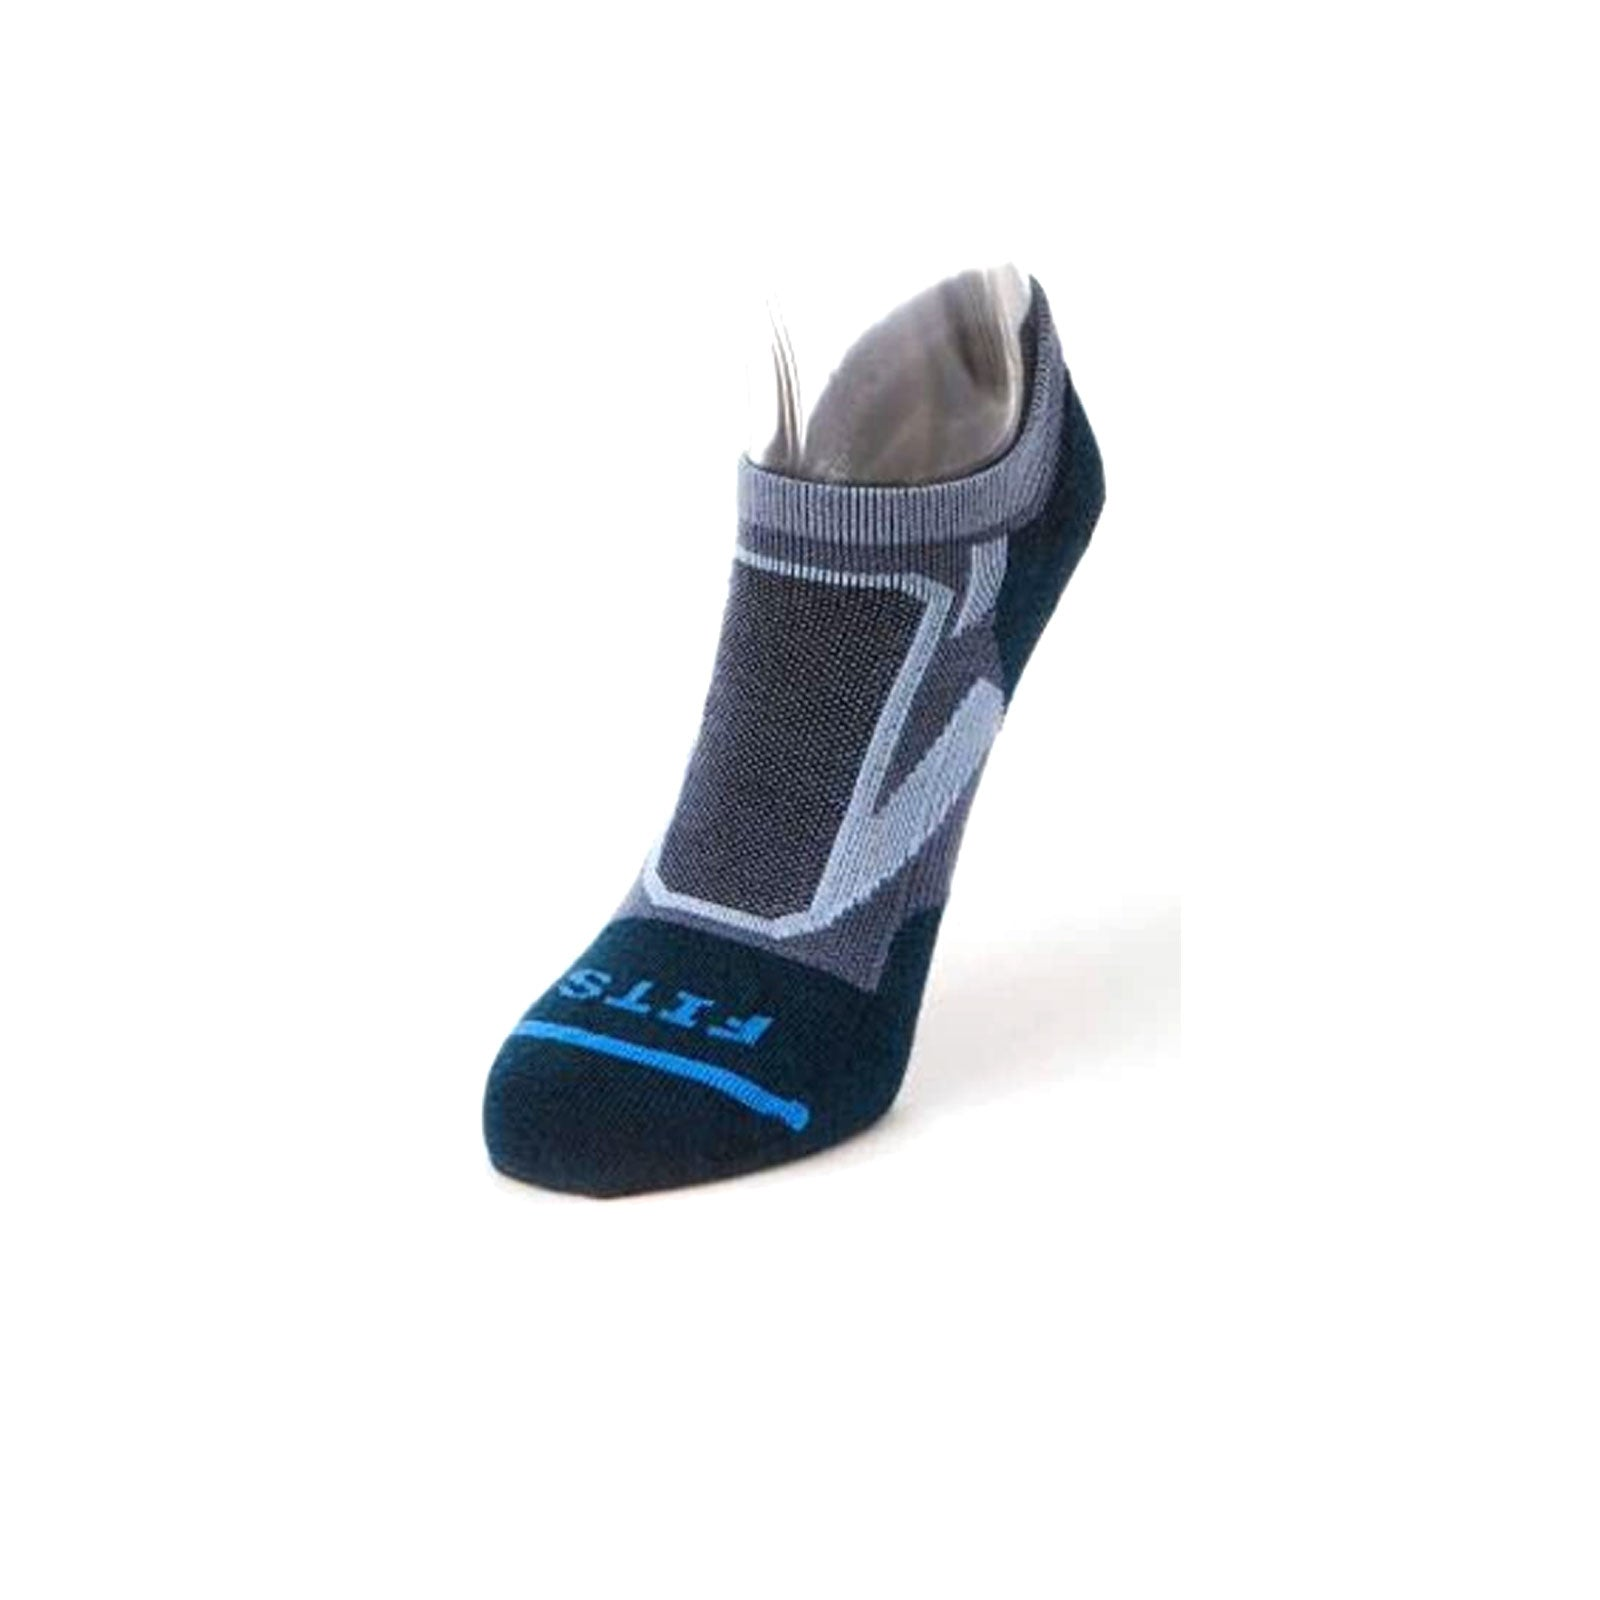 Fits Ultra Light Runner No Show (Women) - Reflecting Pond Socks - Life - No Show - The Heel Shoe Fitters